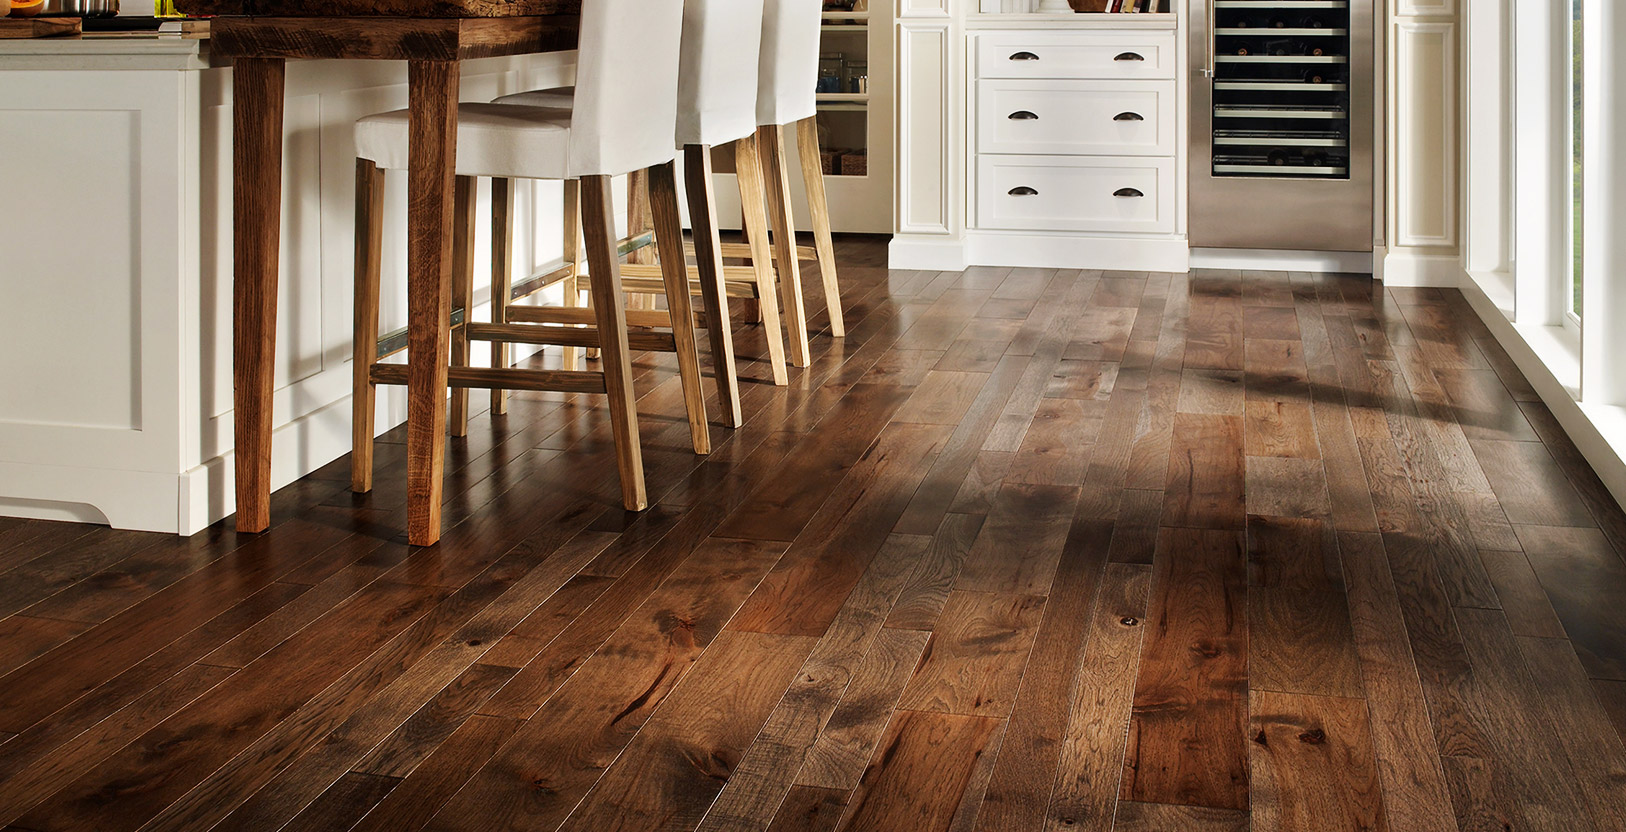 Cork Flooring For Kitchens Pros And Cons Bamboo Floors Pros And Cons Roselawnlutheran